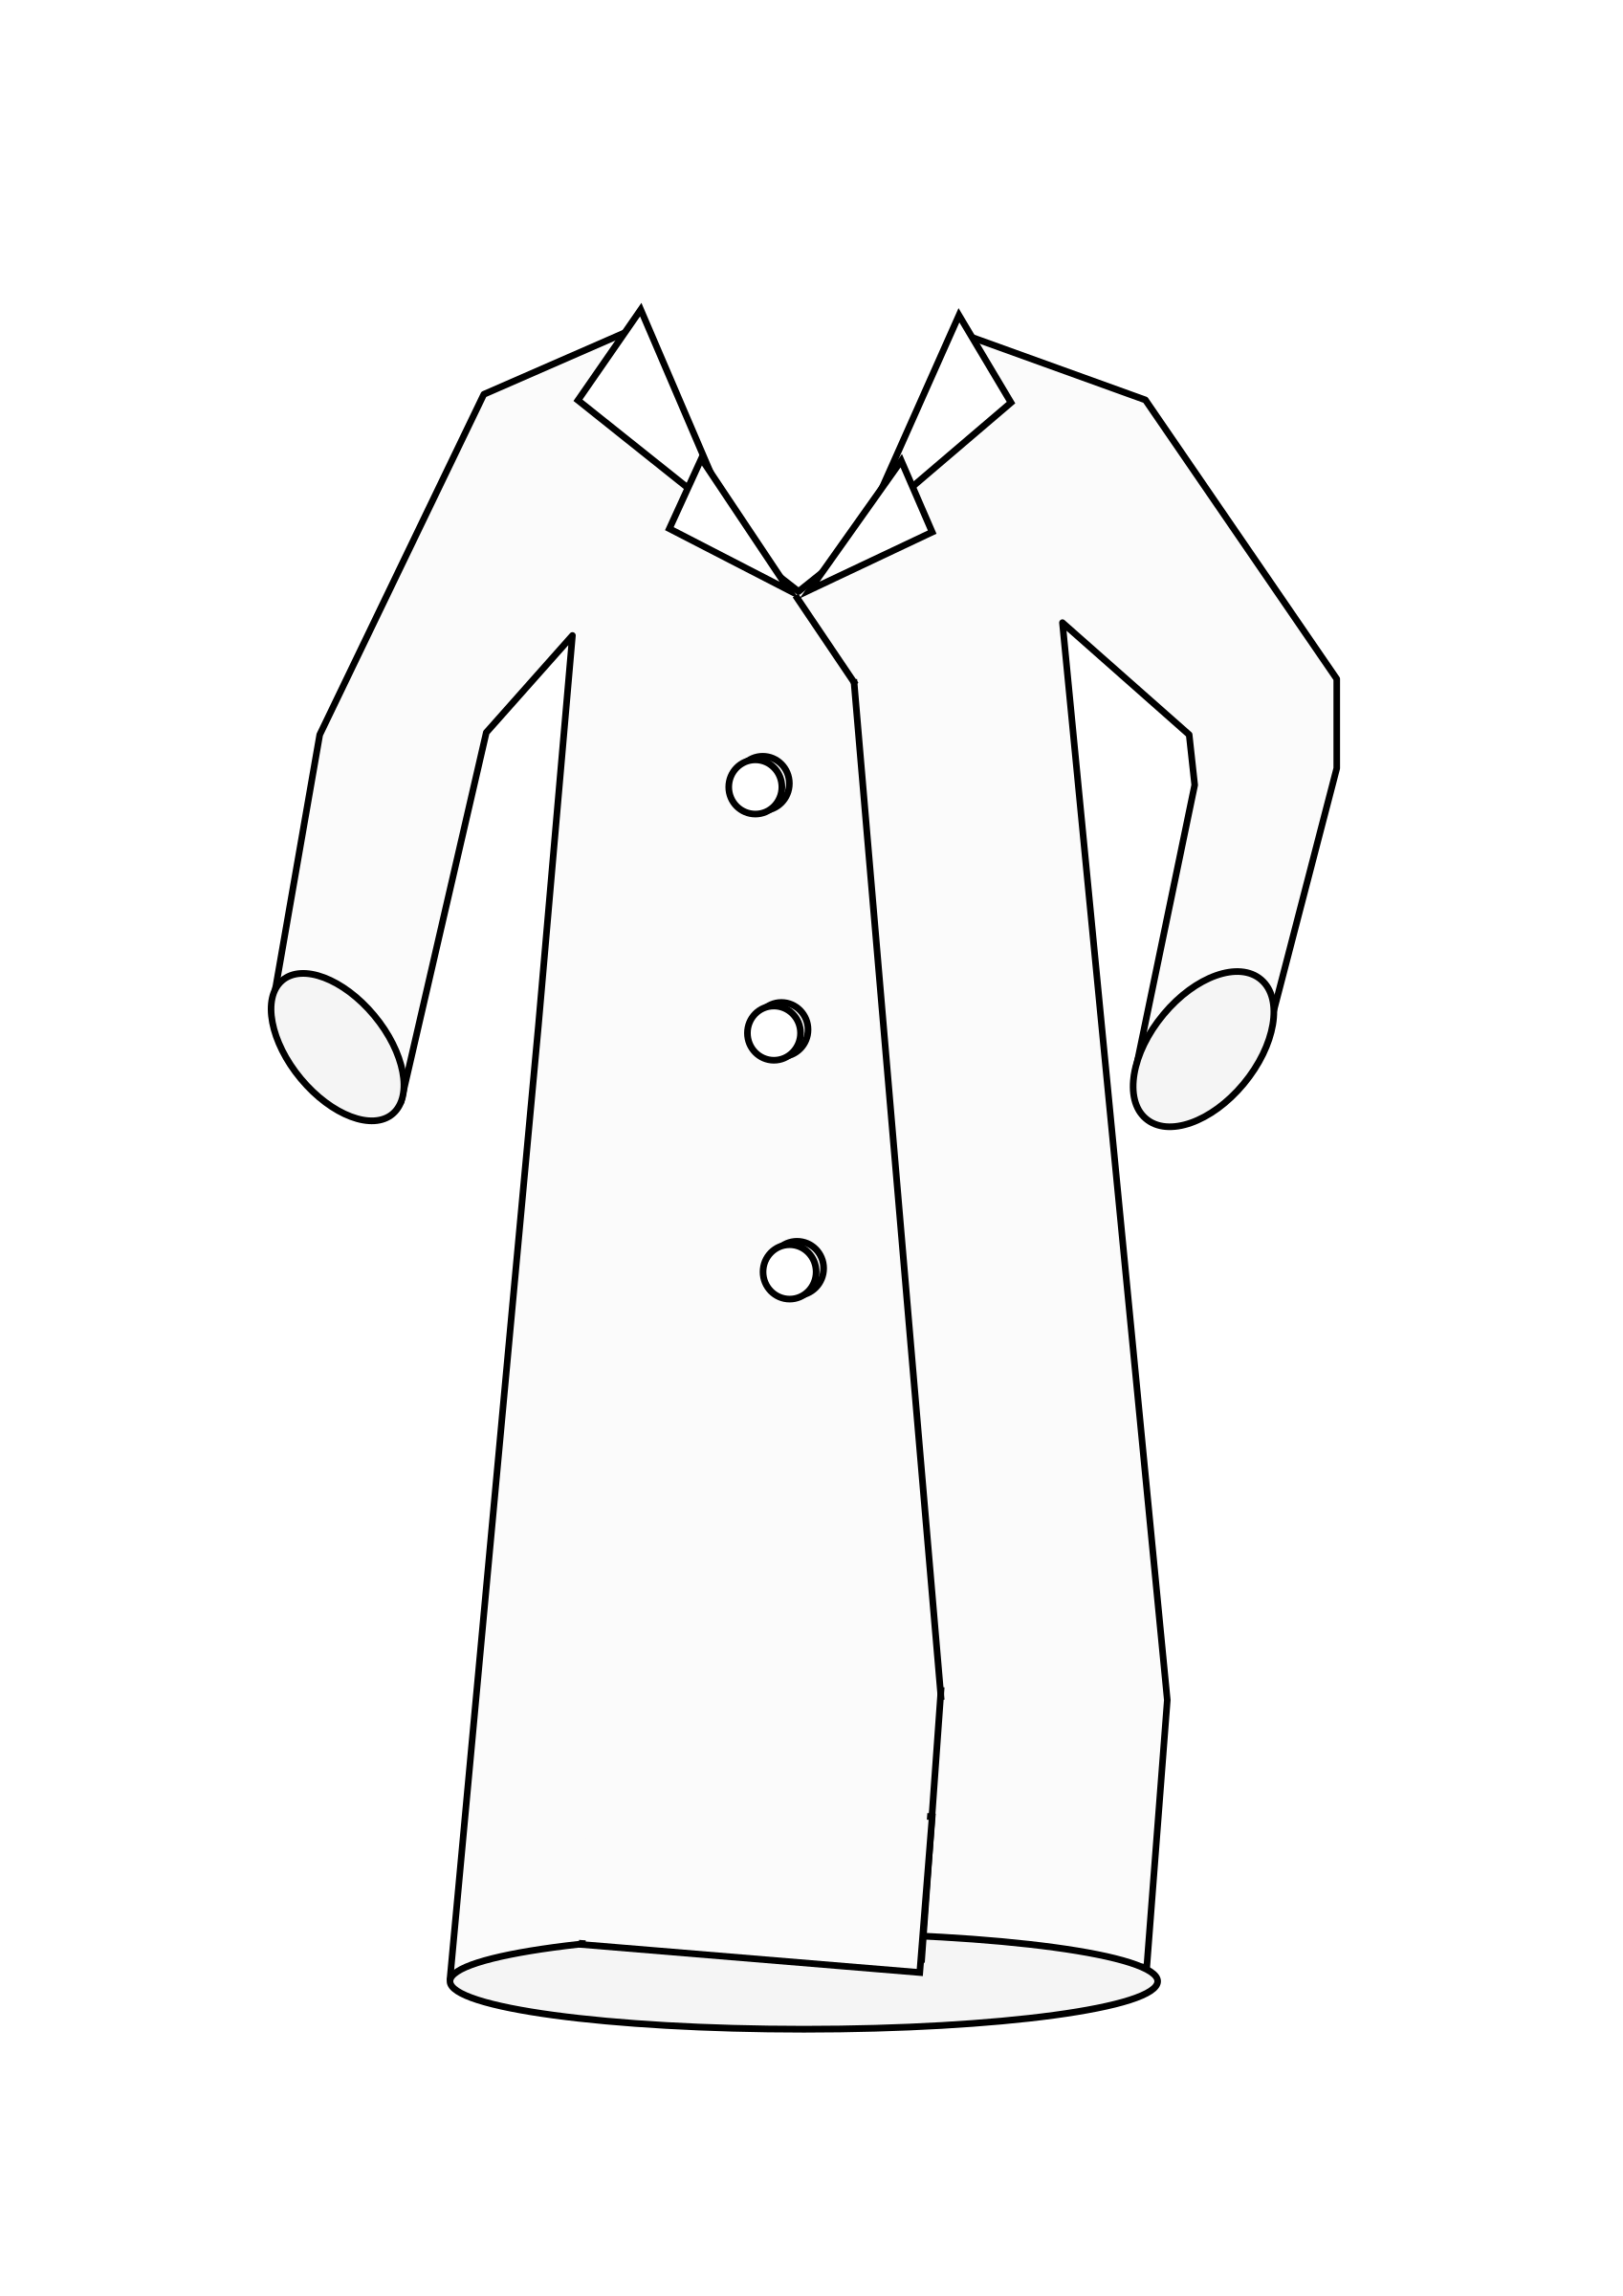 Laboratory Coat by barnheartowl